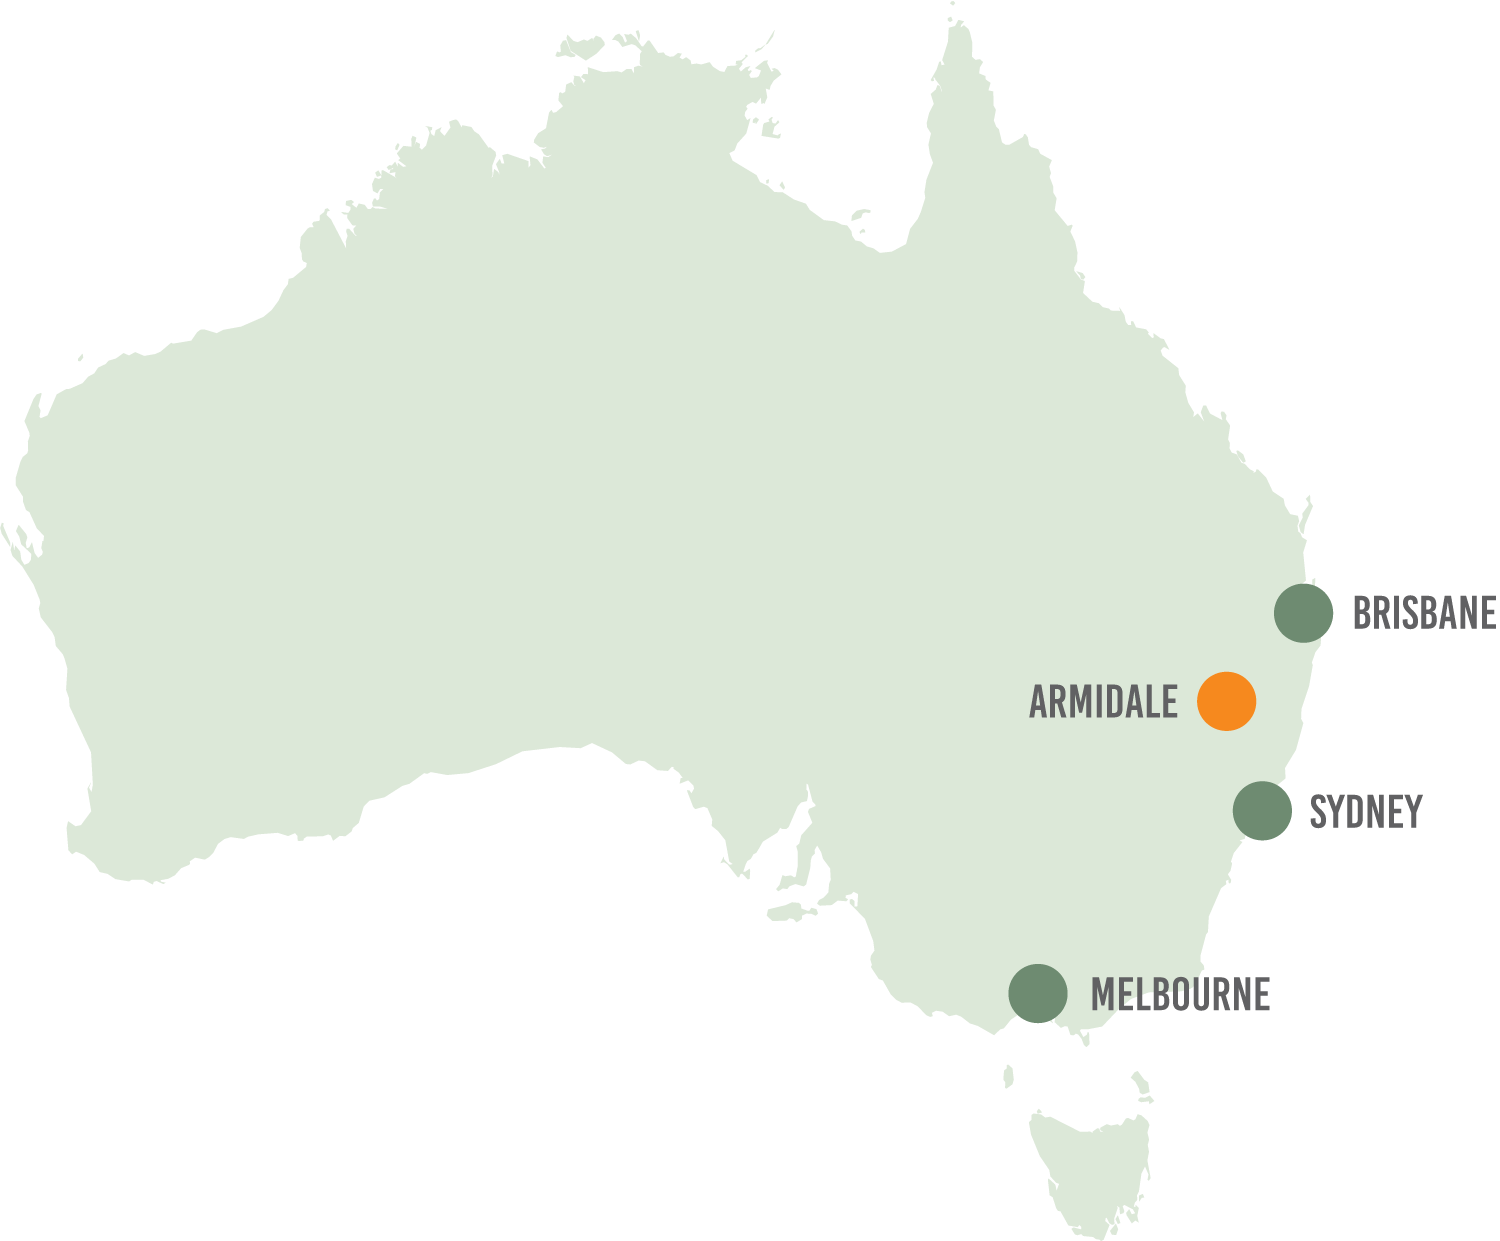 Armidale is a one-hour flight from Sydney and Brisbane